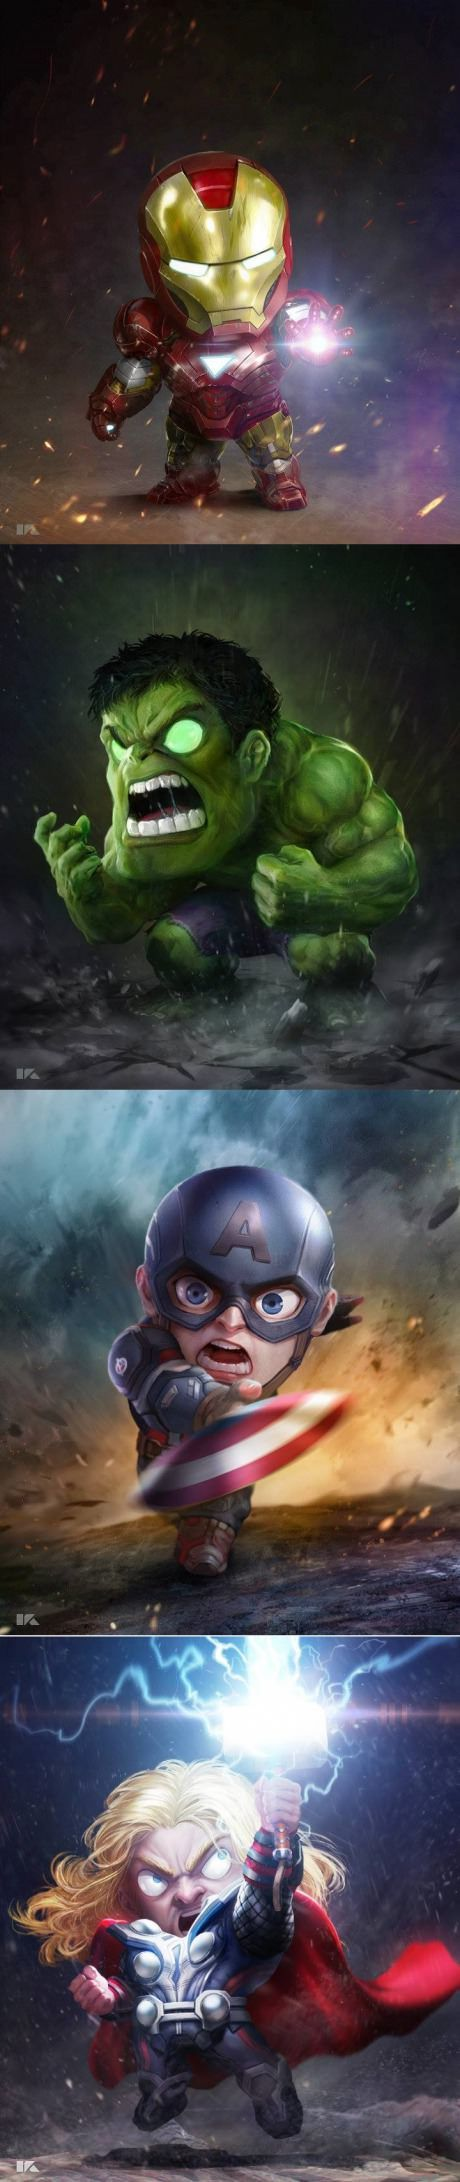 Avengers (by Kuchu Pack)